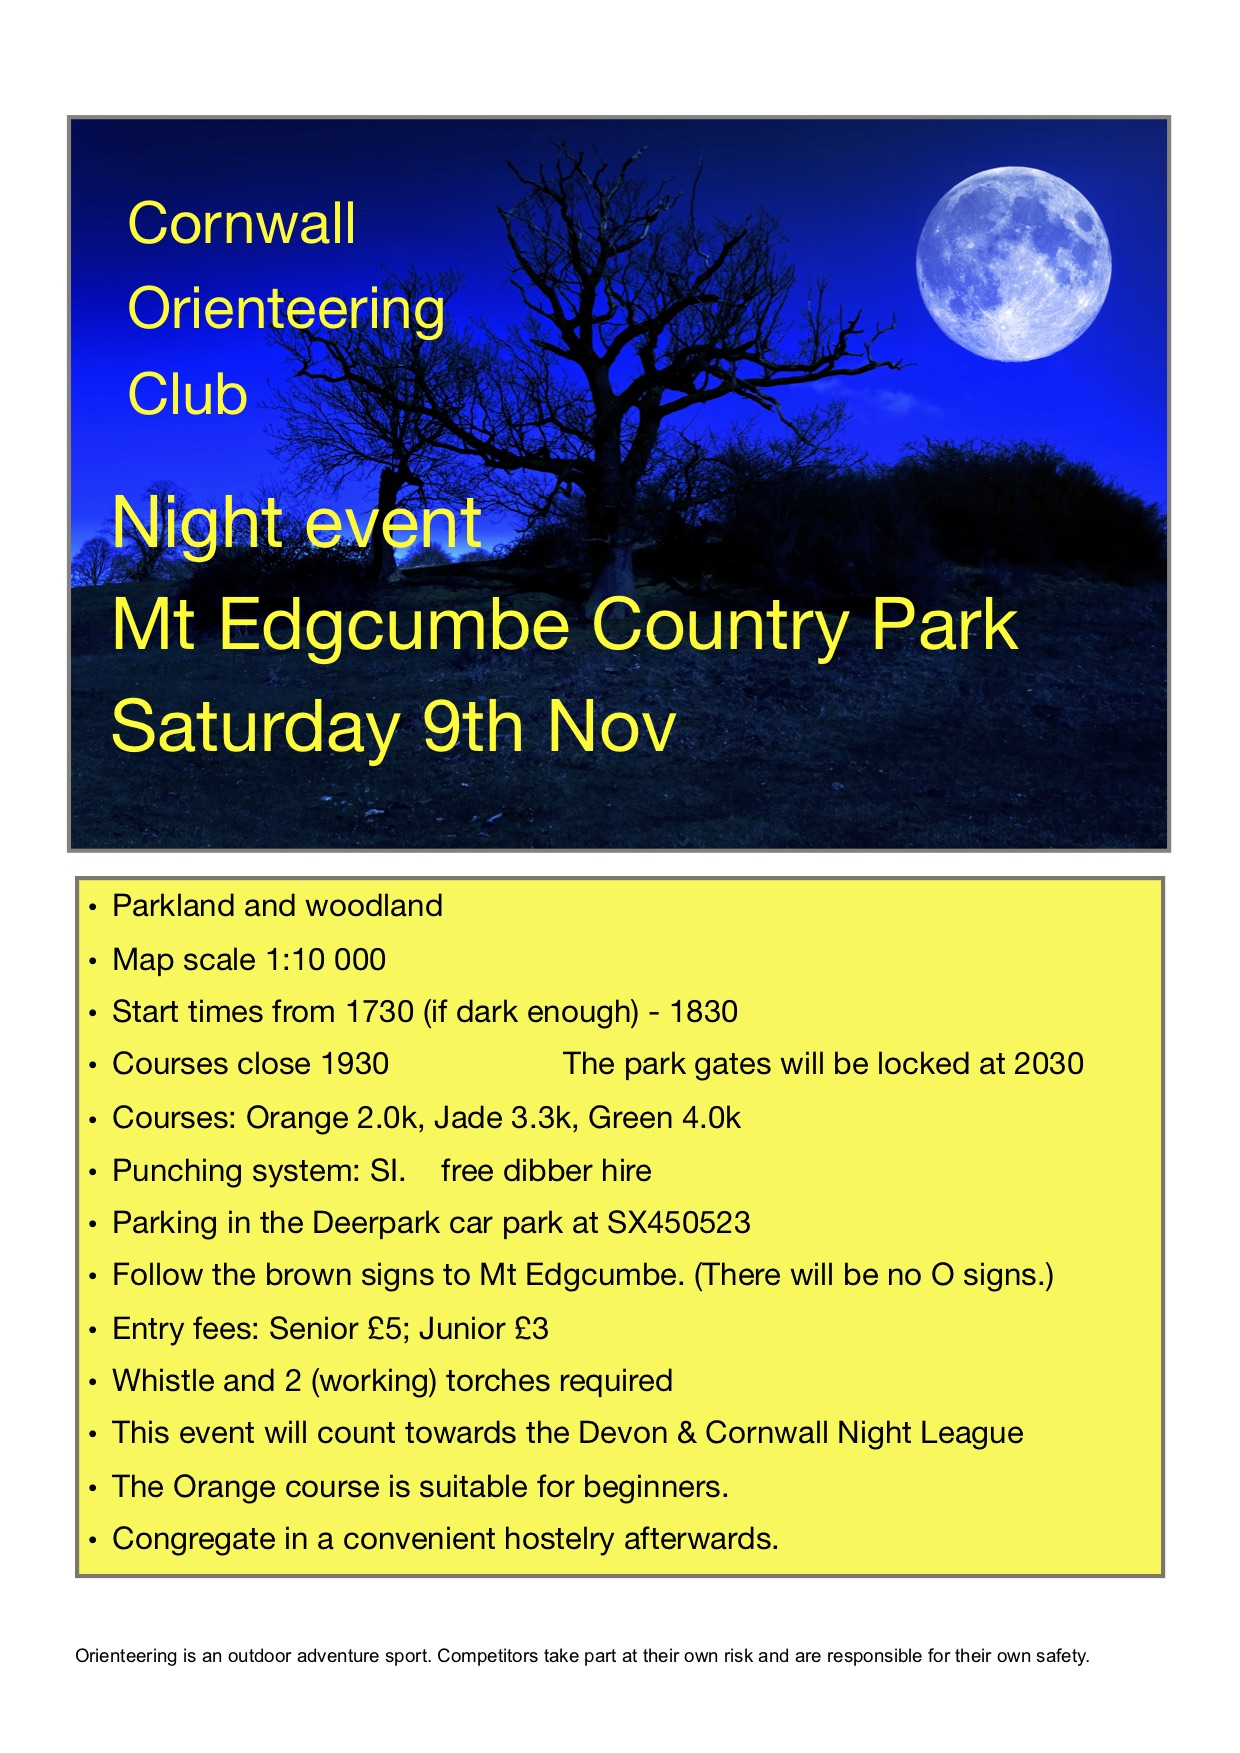 flyer for Mt Edgcumbe night event